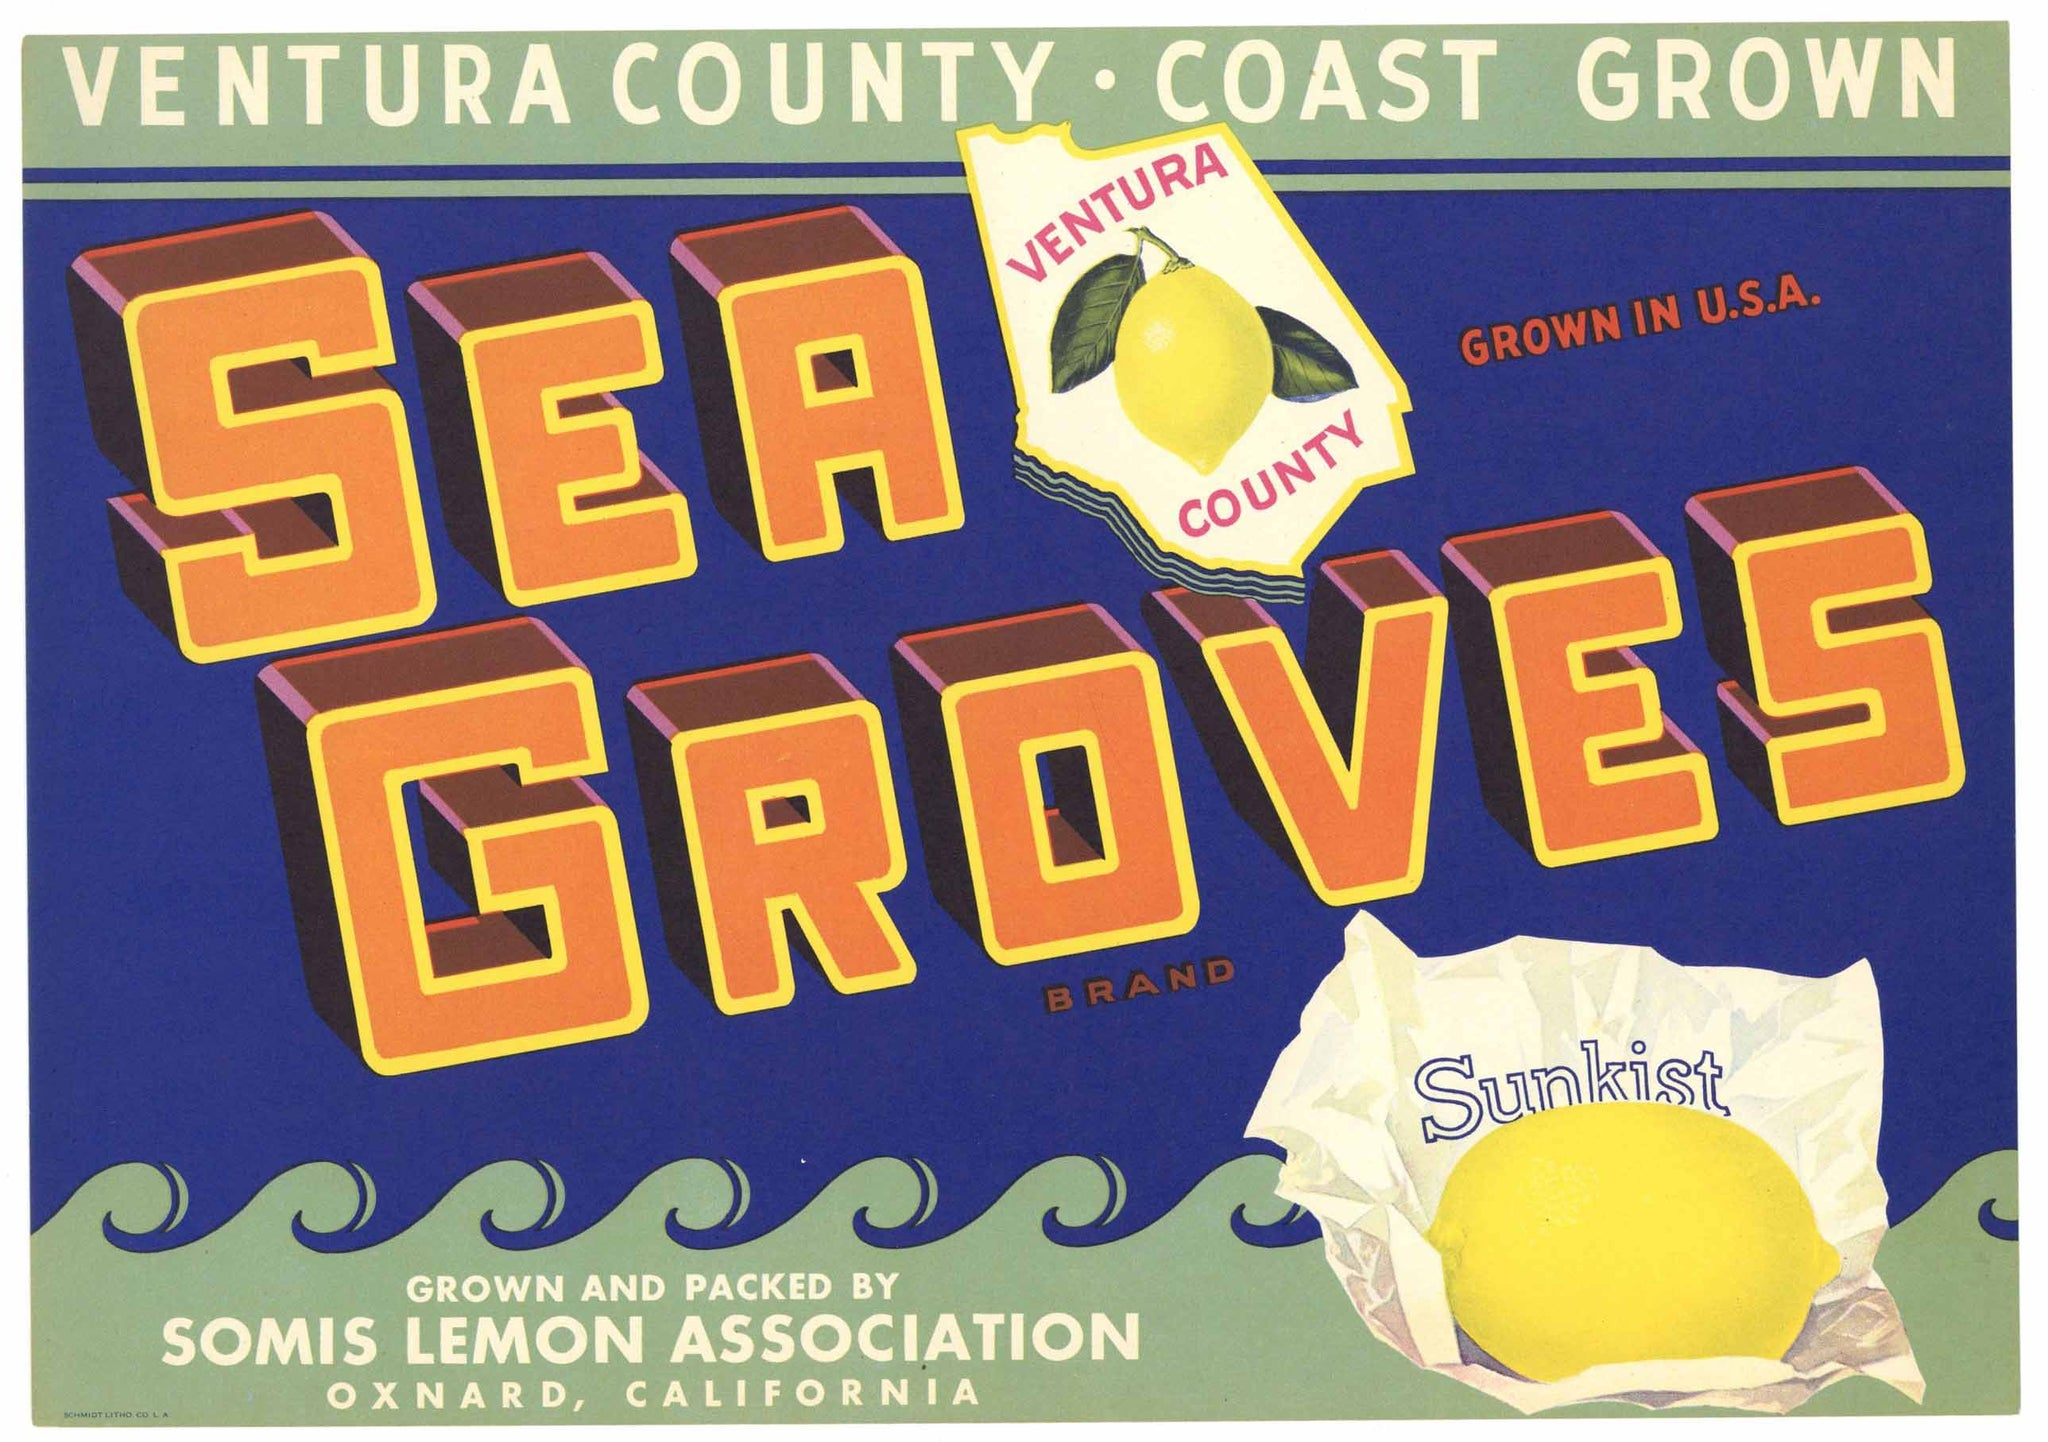 Sea Groves Brand Vintage Oxnard Lemon Crate Label